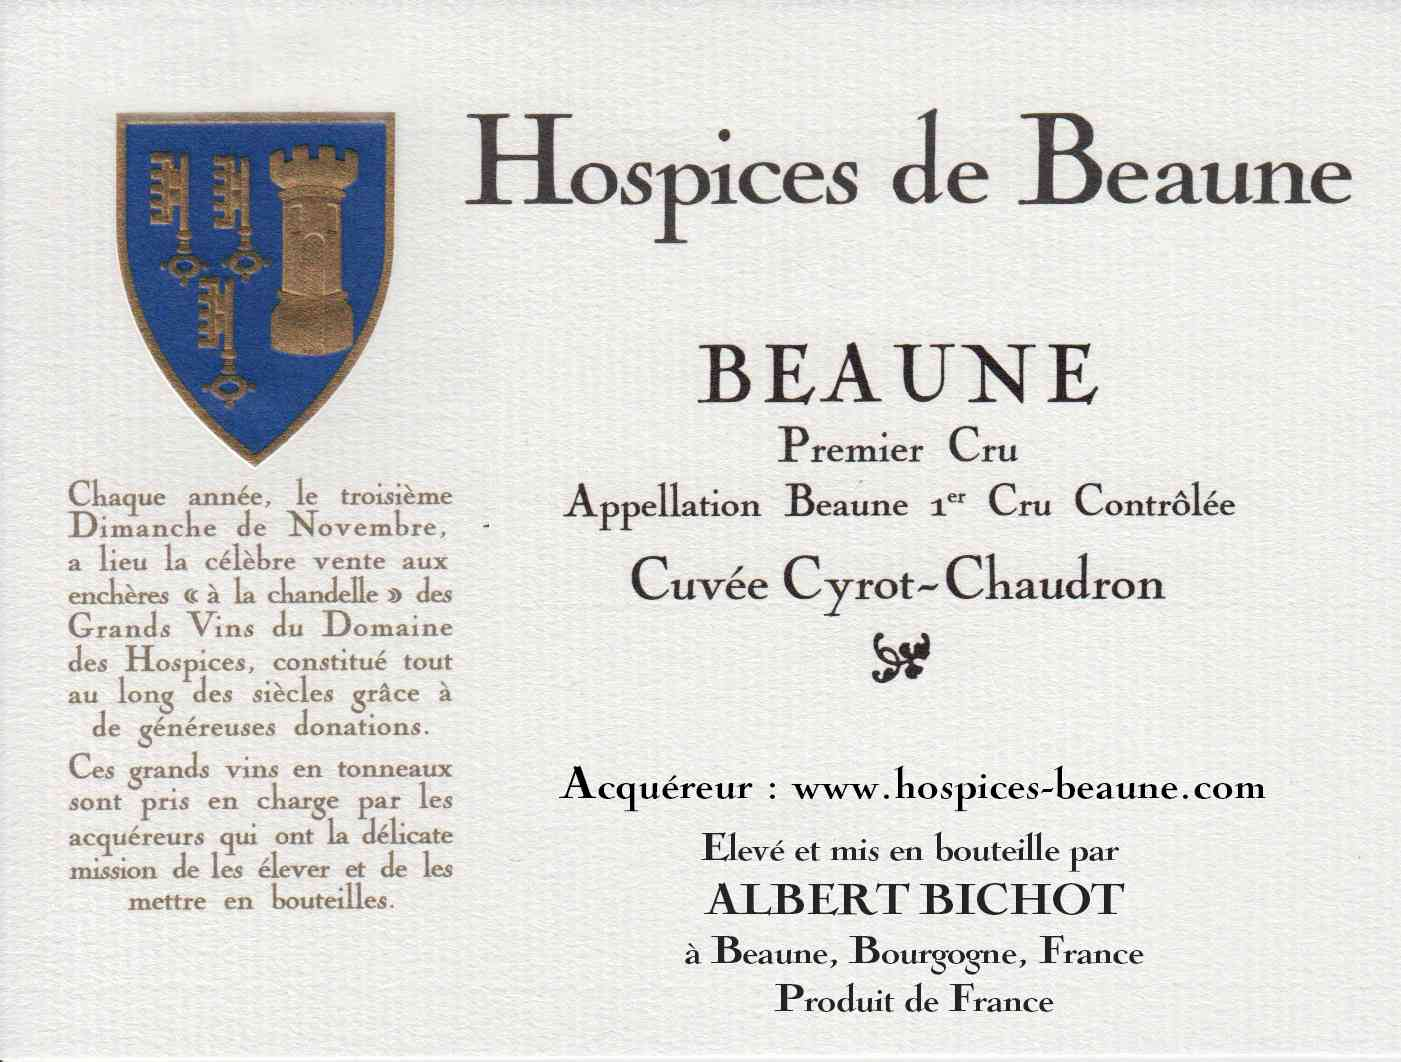 Encheres-auction-HospicesdeBeaune-AlbertBichot-Beaune1erCru-Cuvee-CyrothChaudron